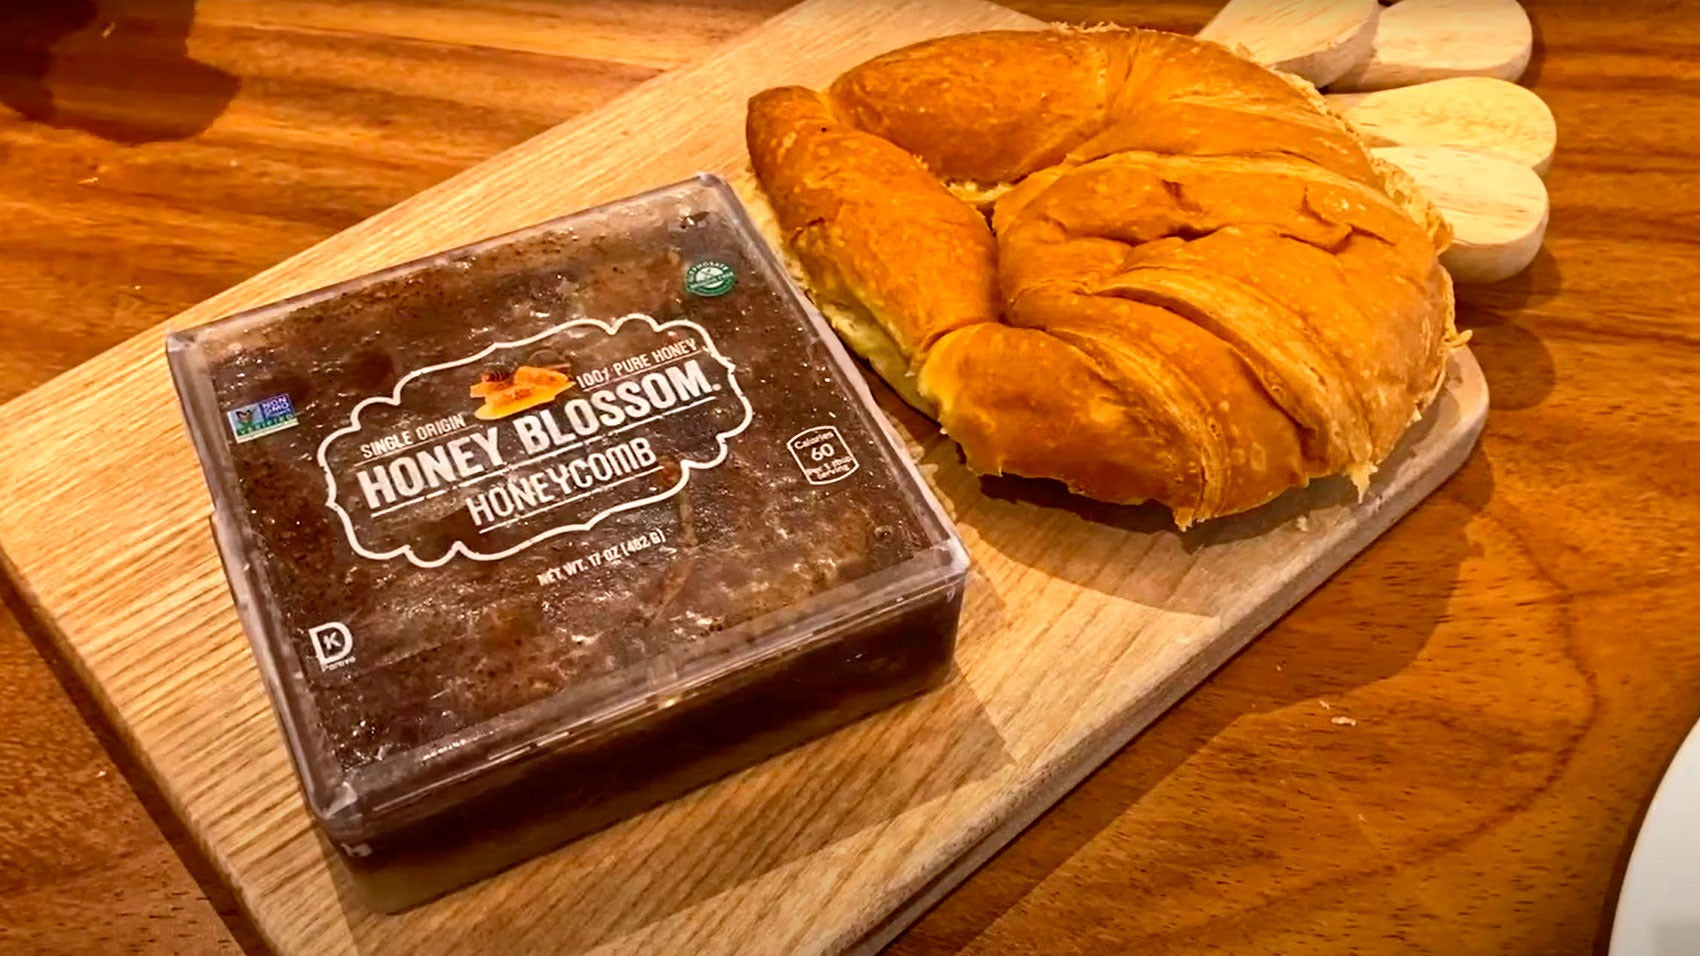 Video with Honey Blossom's Chocolate Covered Honeycomb box, being opened and cut with a knife, and pouring the honeycomb into a large horn bread, on a wooden board, on a wooden table.